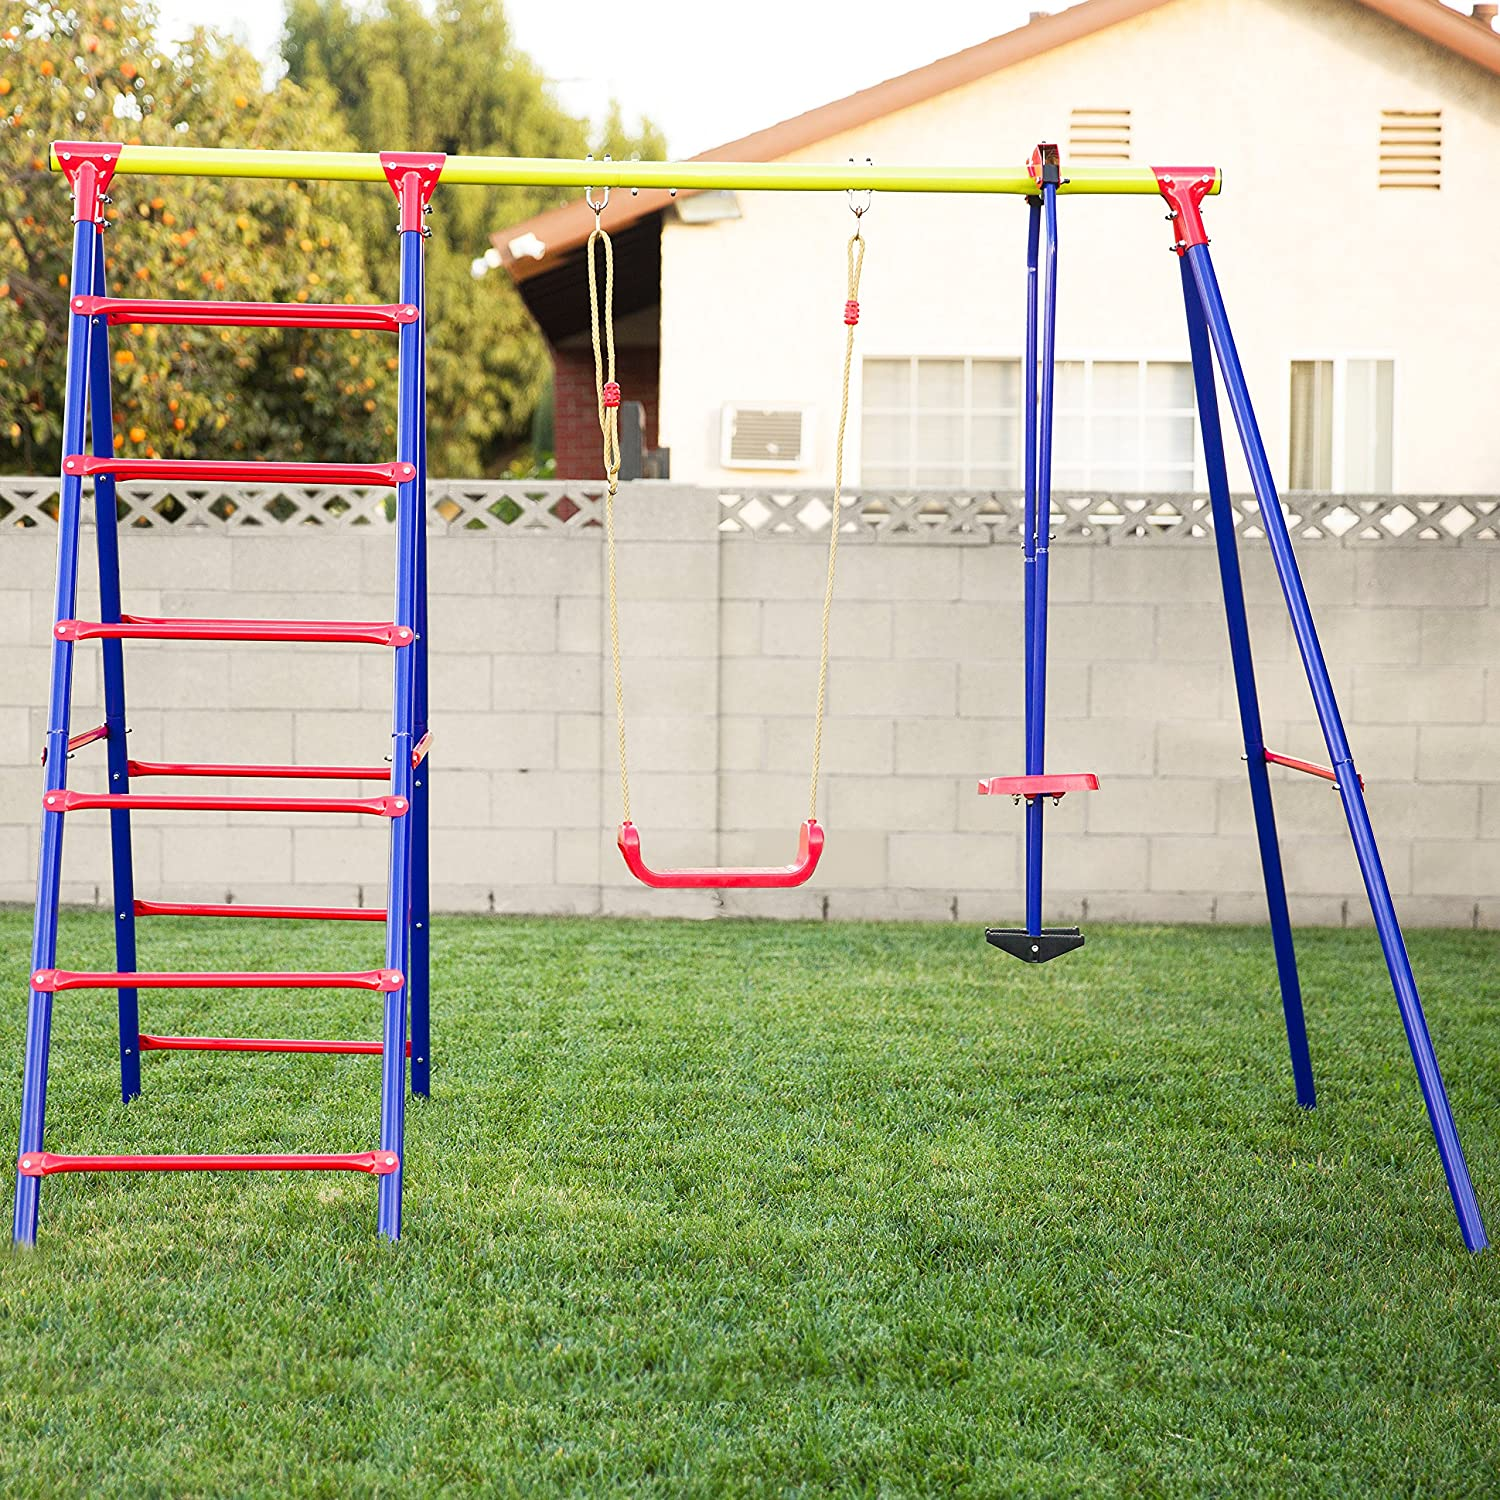 It has a handle bar making it ideal for children to learn how to balance and bounce. It is stable, safe and durable.